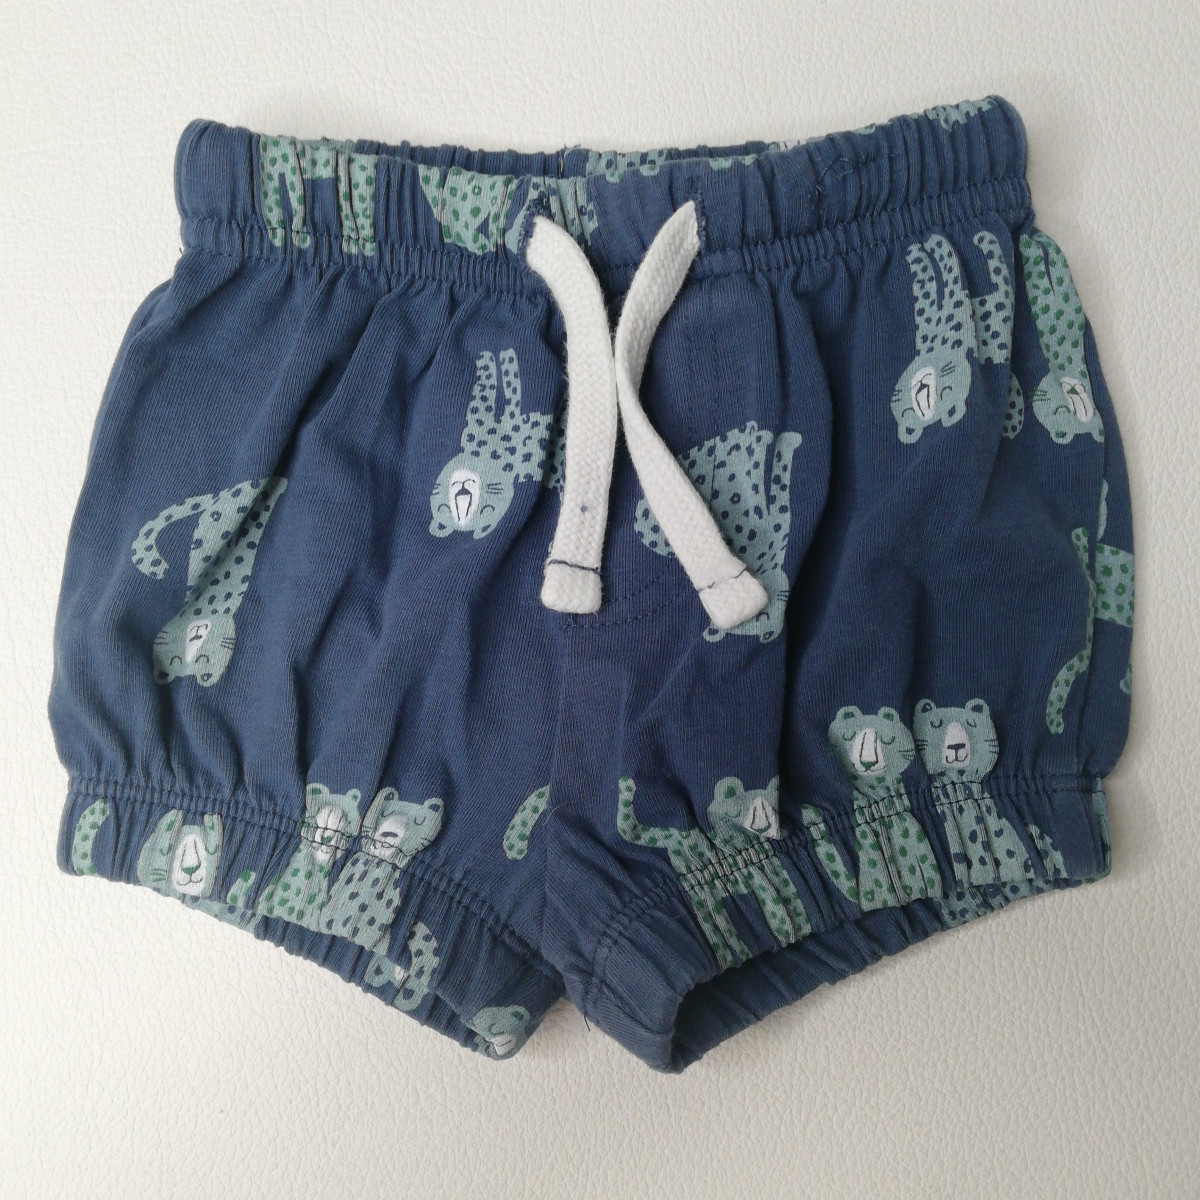 Shorts, Bermudas - photo 12